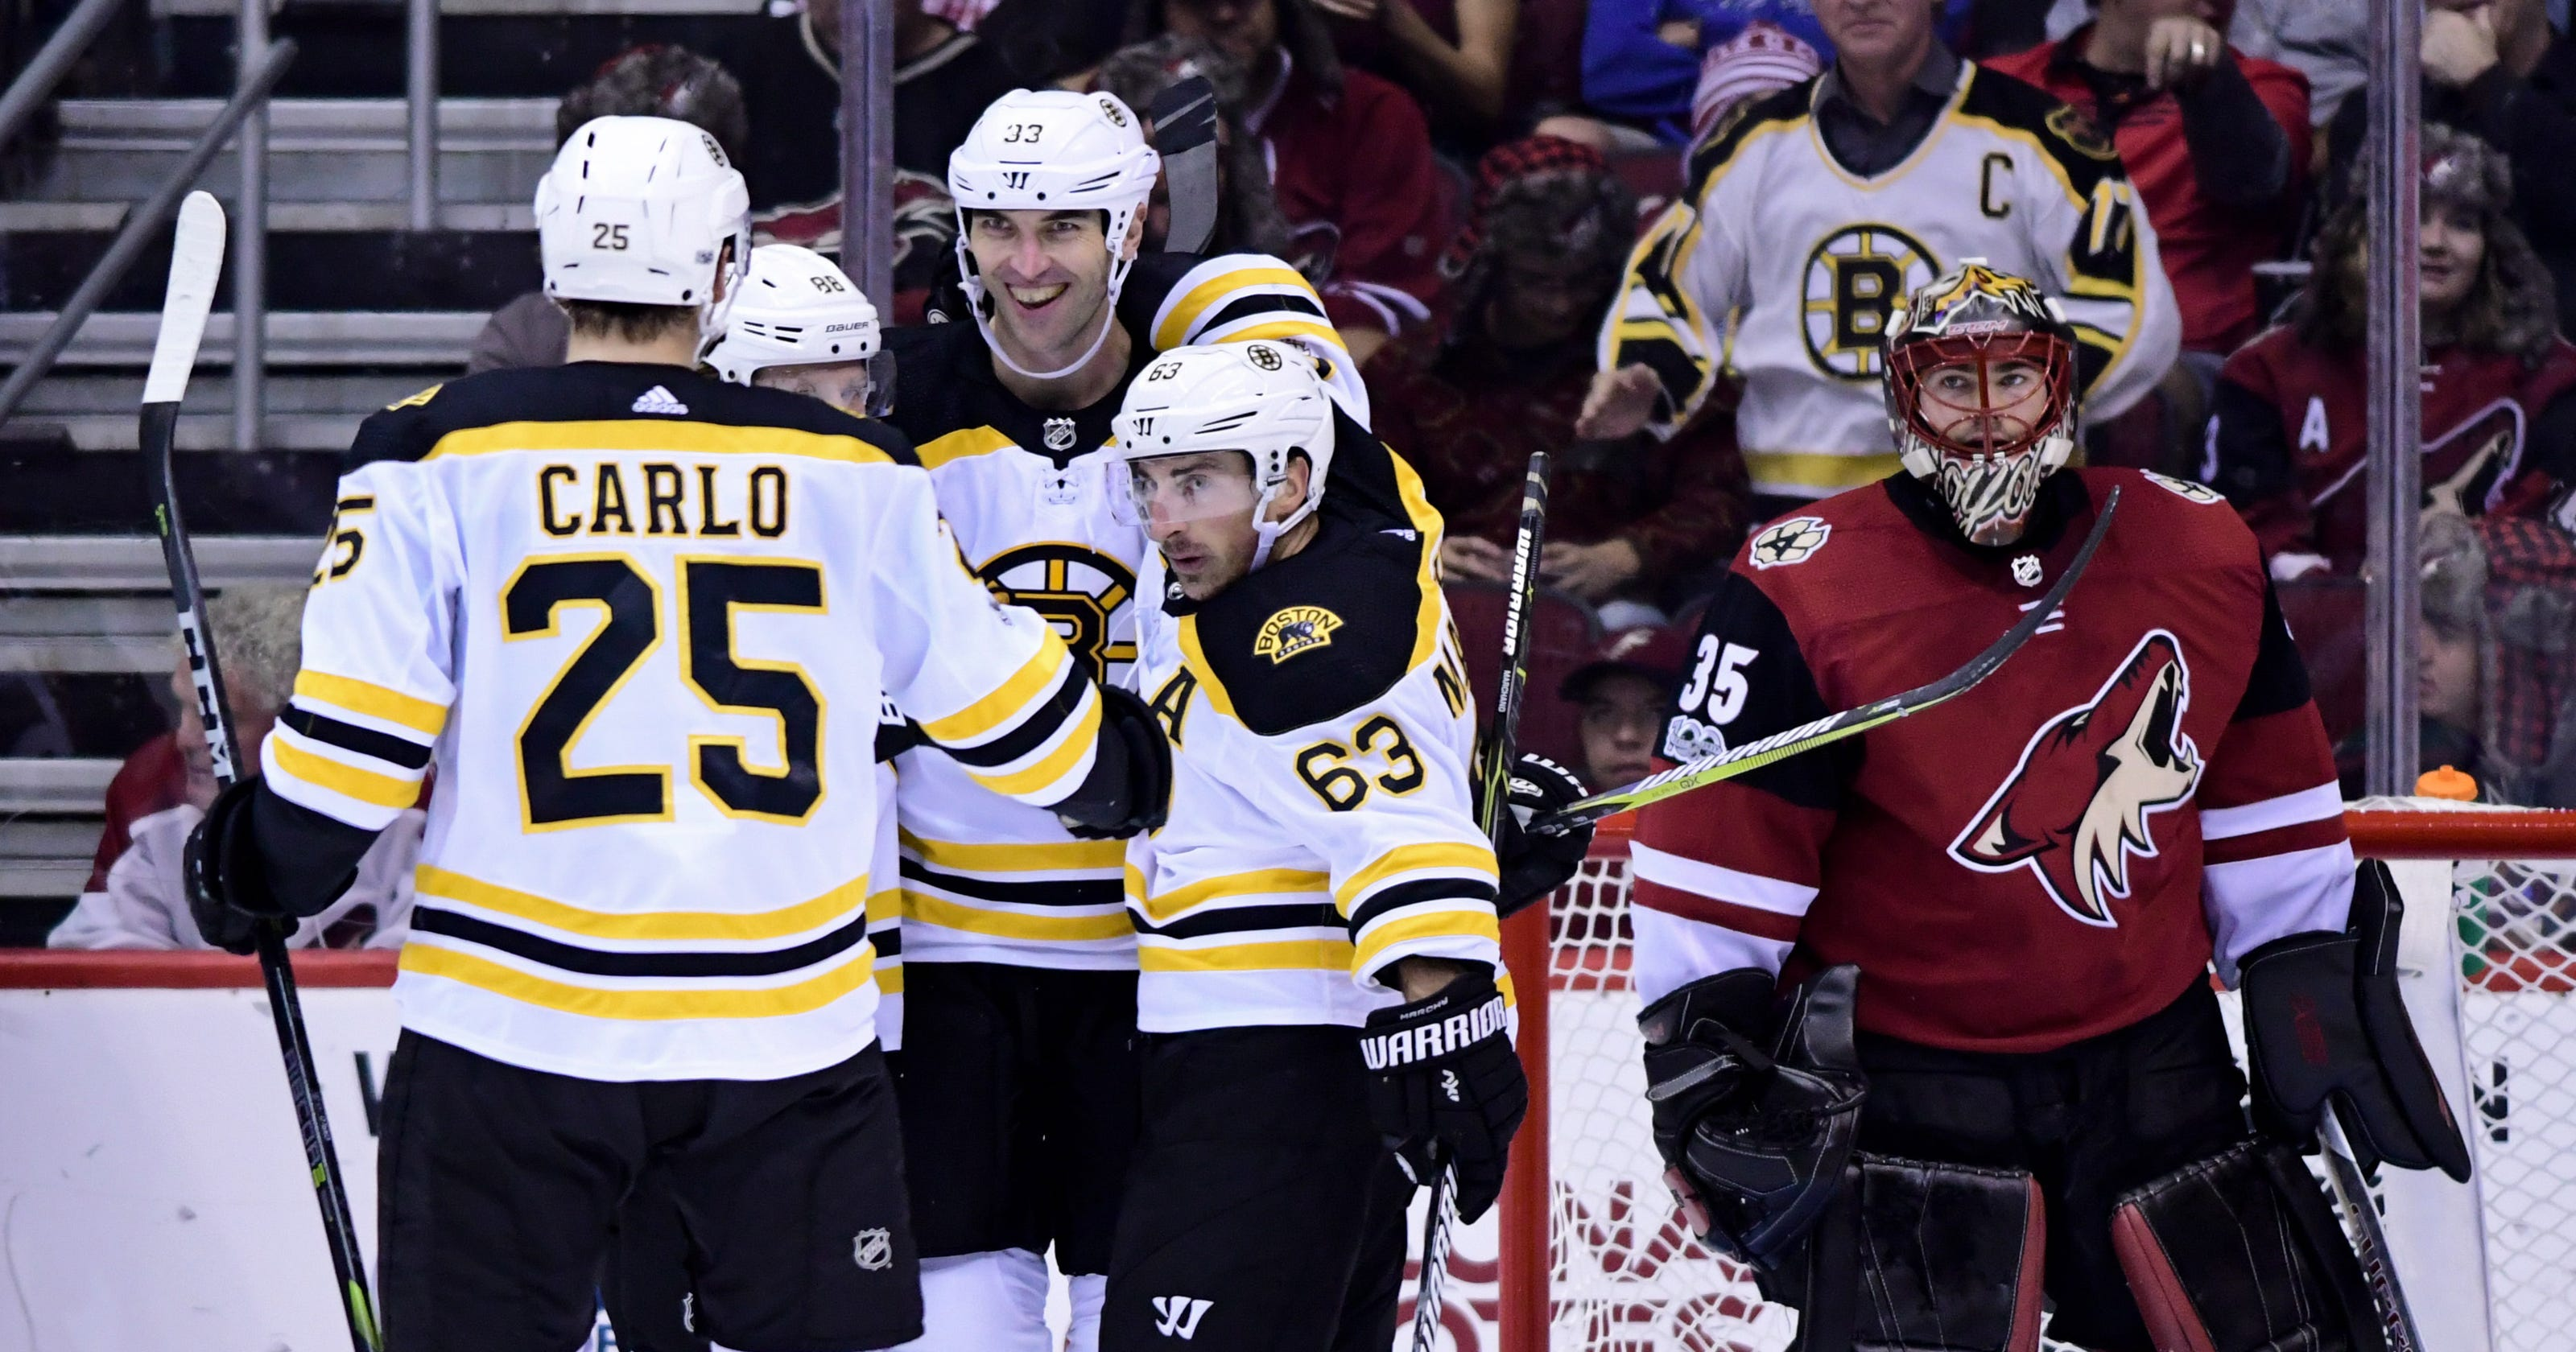 368299418 Arizona Coyotes 'embarrassed' in blowout loss to Bruins